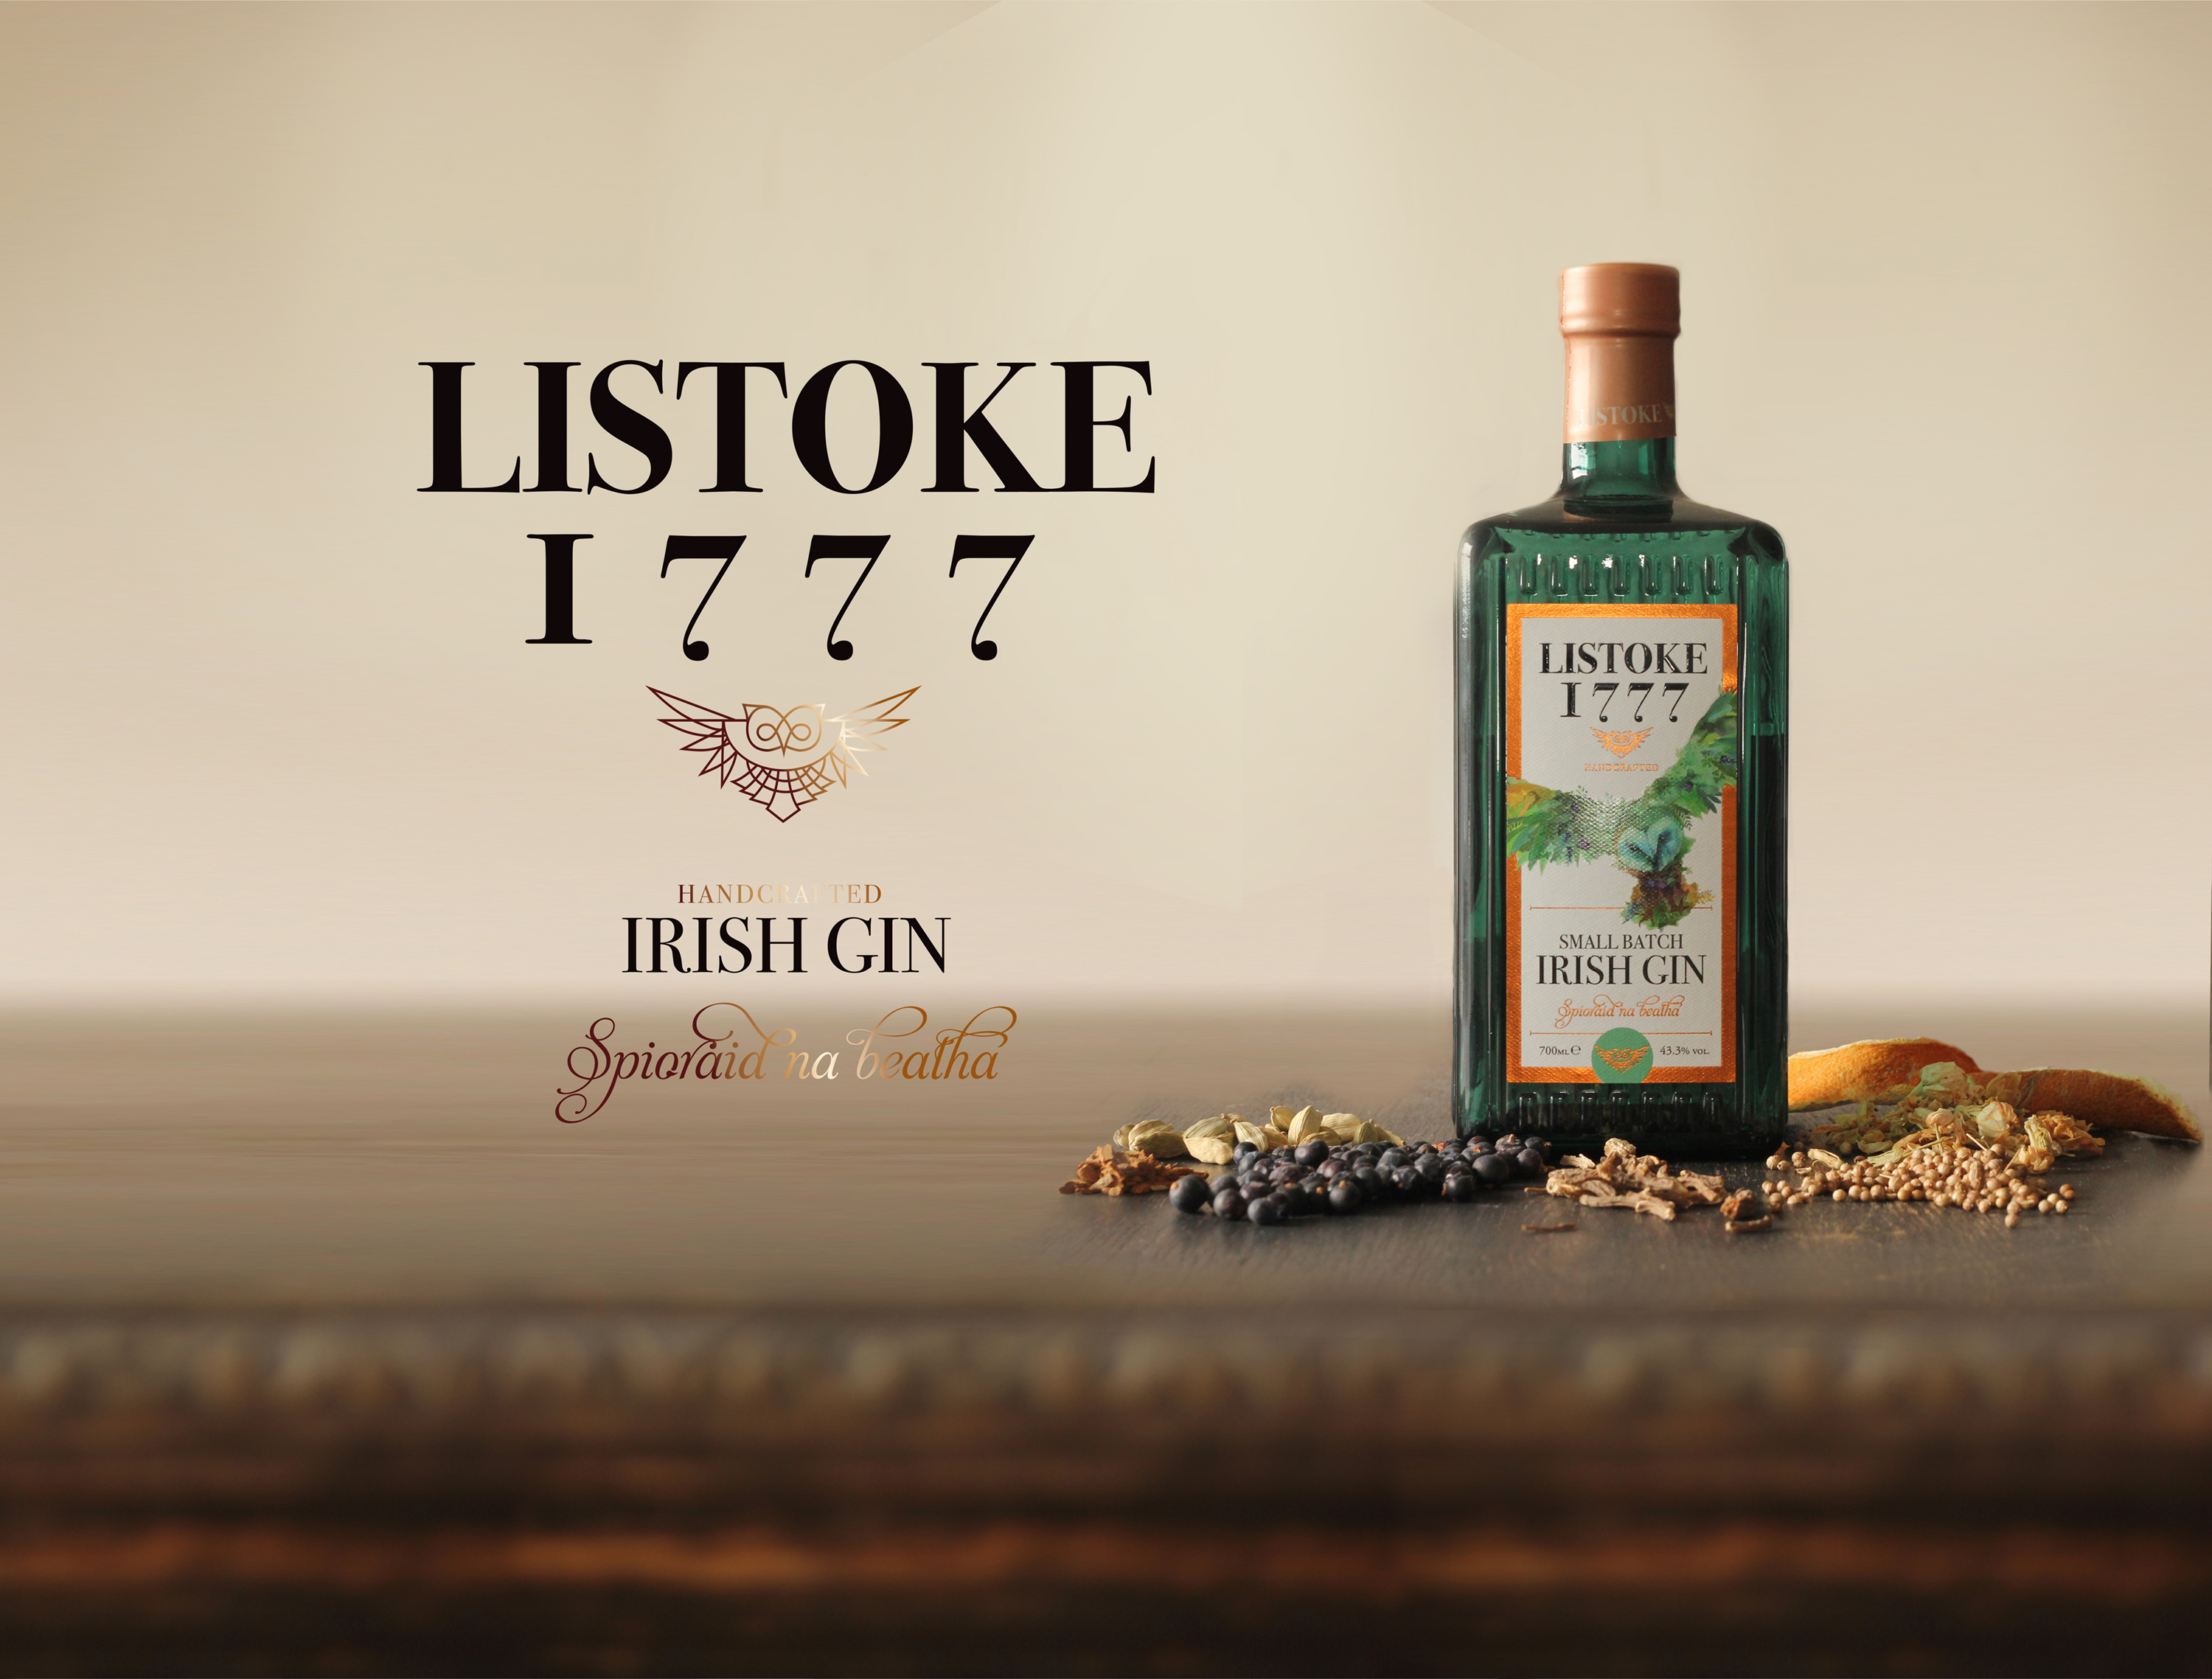 Cover image: Listoke Gin - Packaging